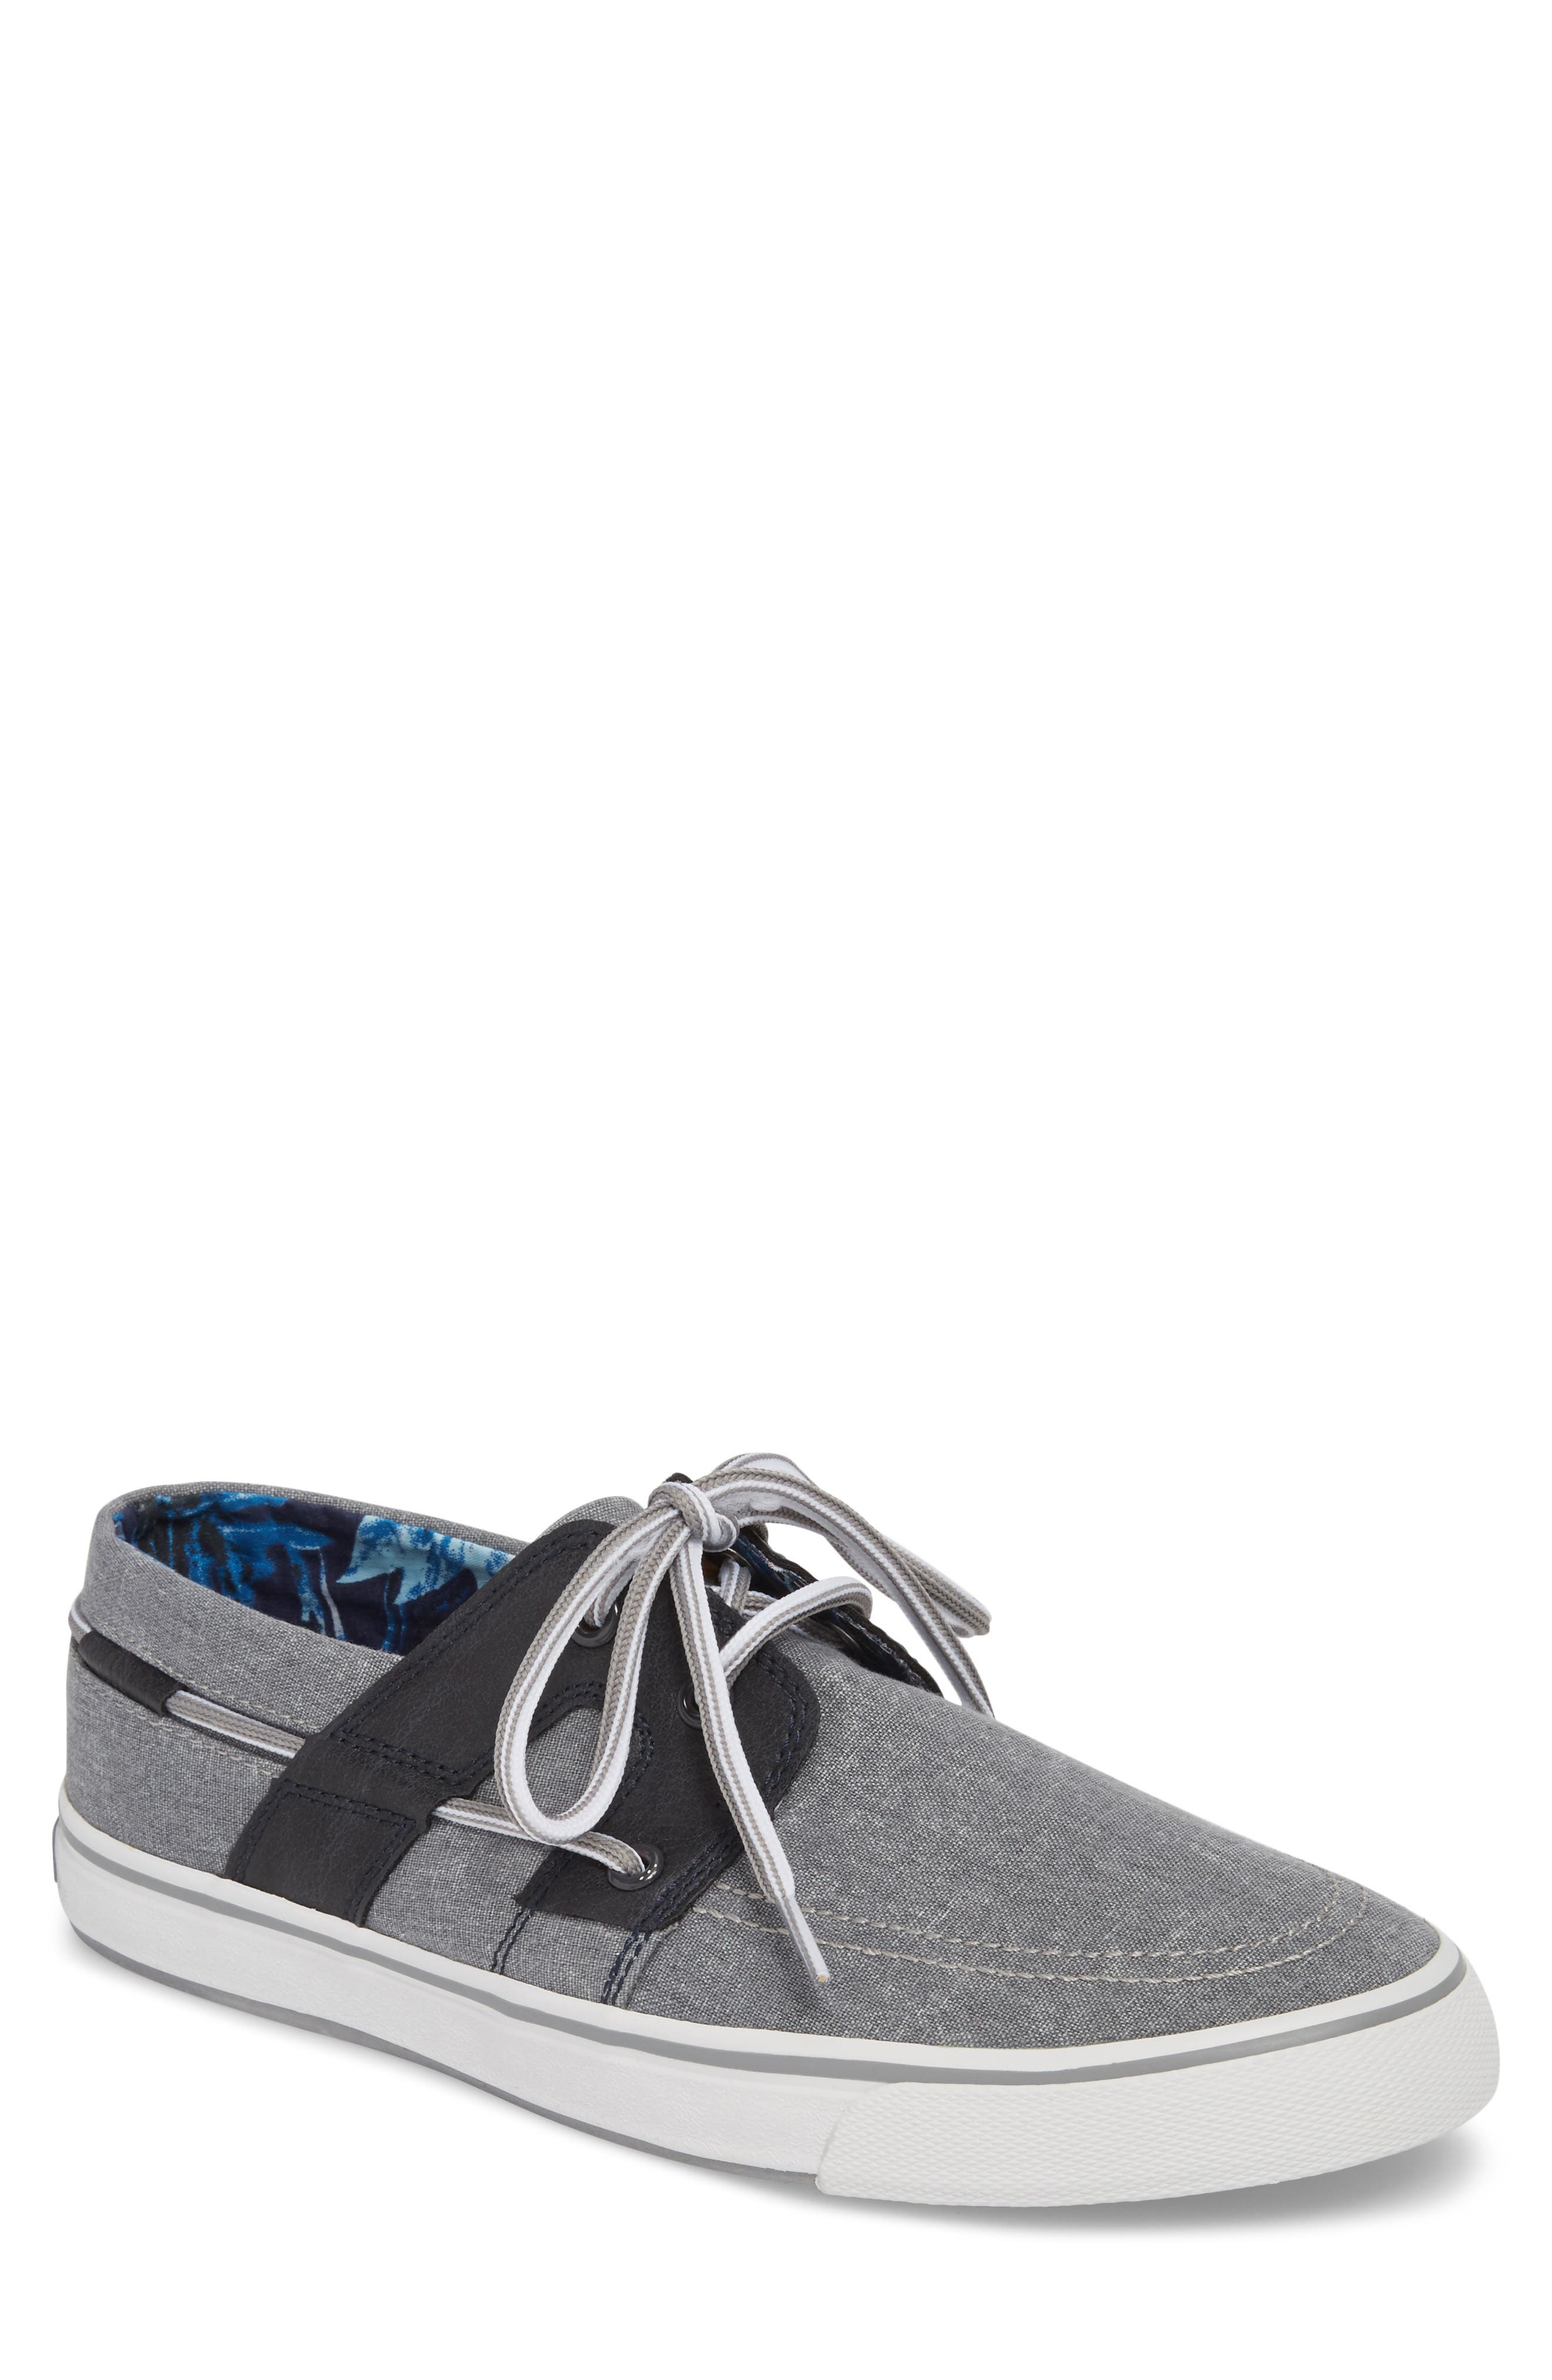 Stripe Breaker Sneaker,                         Main,                         color, GREY/ BLACK LINEN/ LEATHER